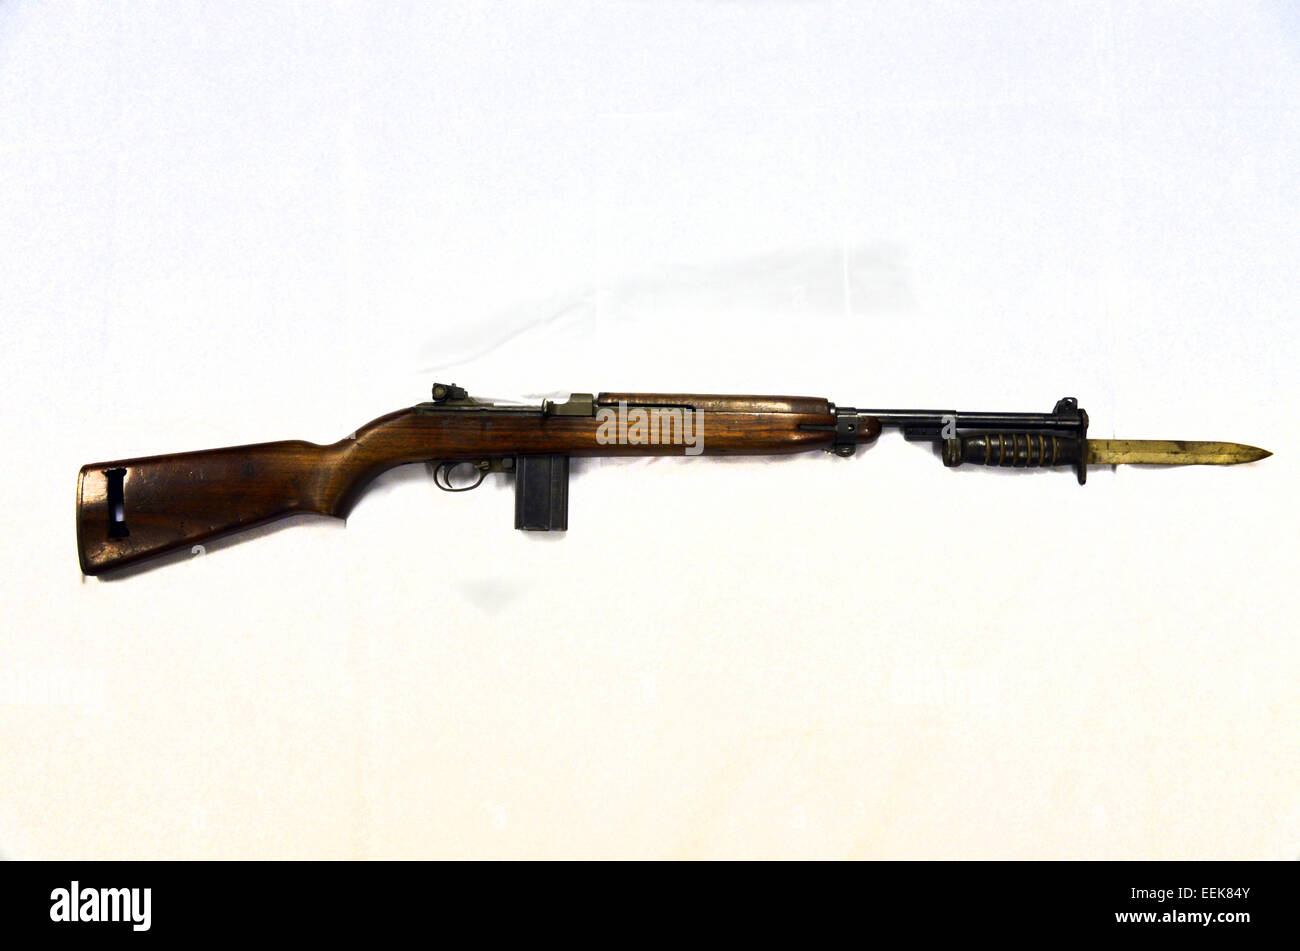 M1 Carbine .30in USA 1941 - Stock Image